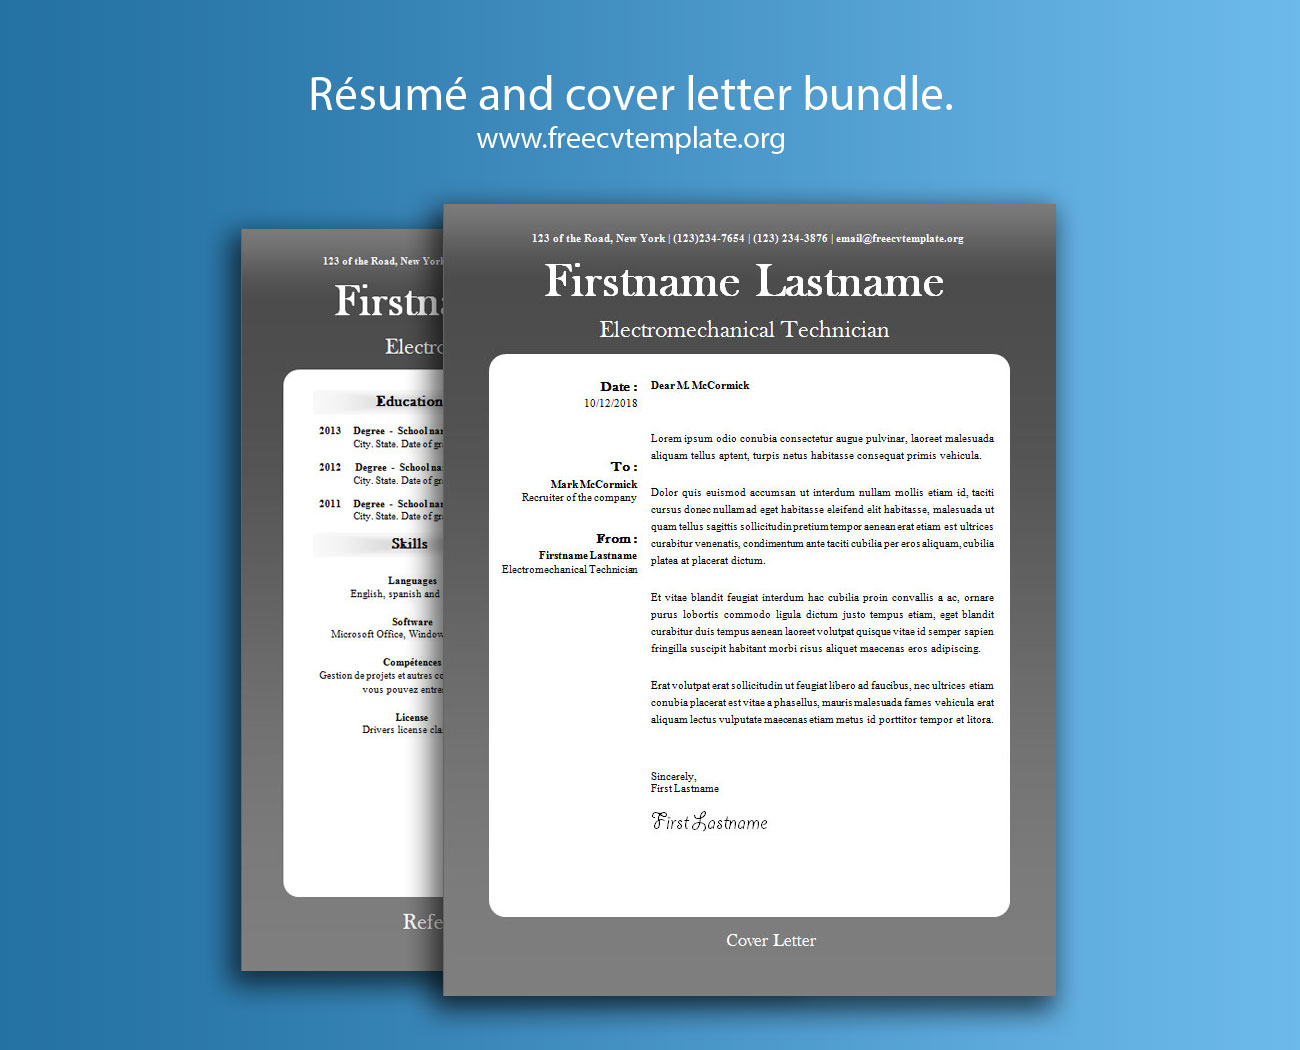 Résumé and Cover Letter Bundle #4